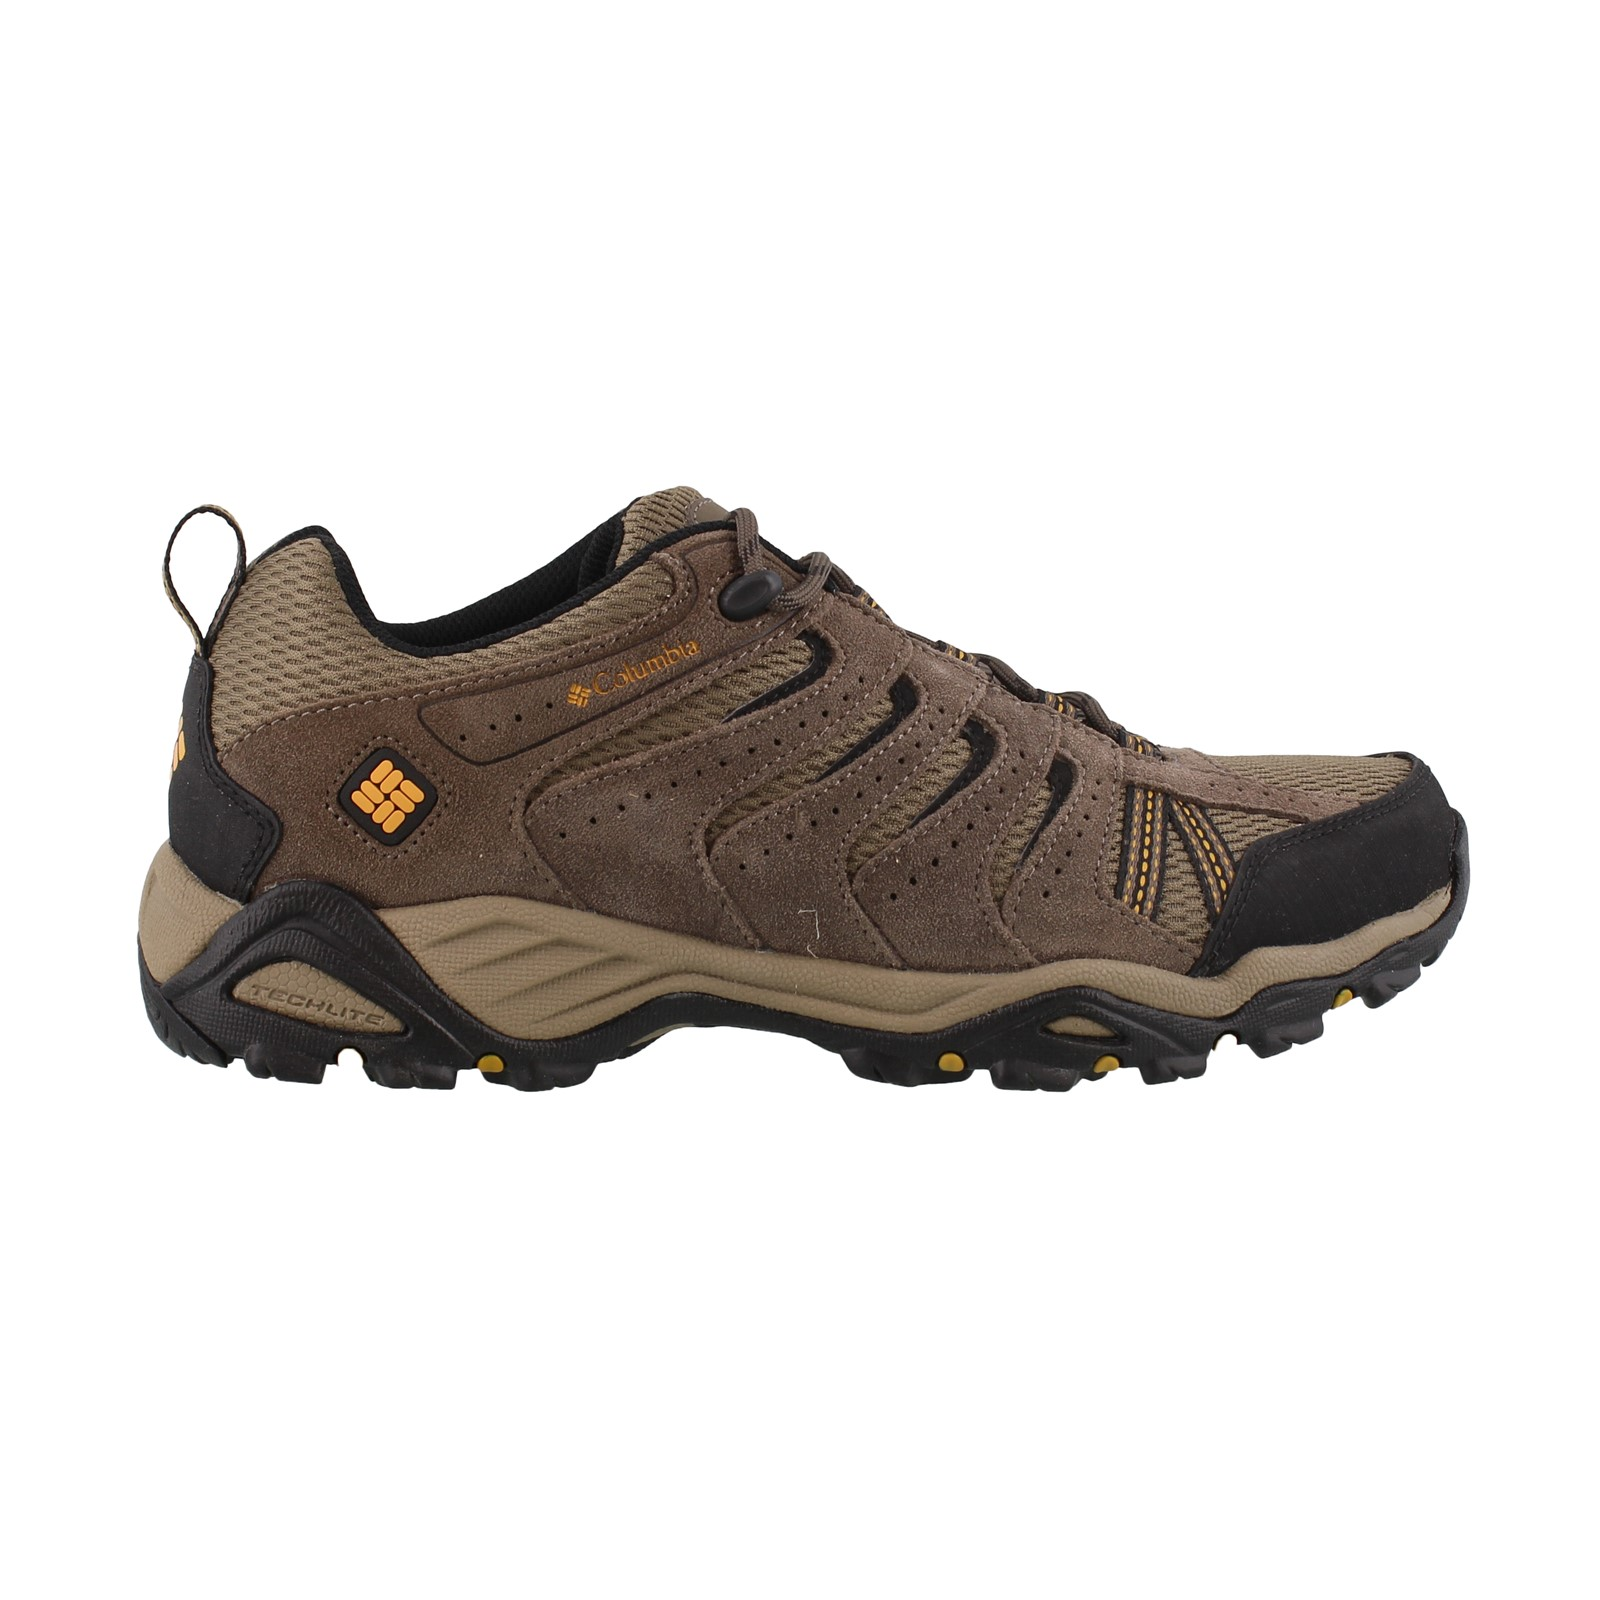 Men's Columbia, North Plains II Hiking Shoes